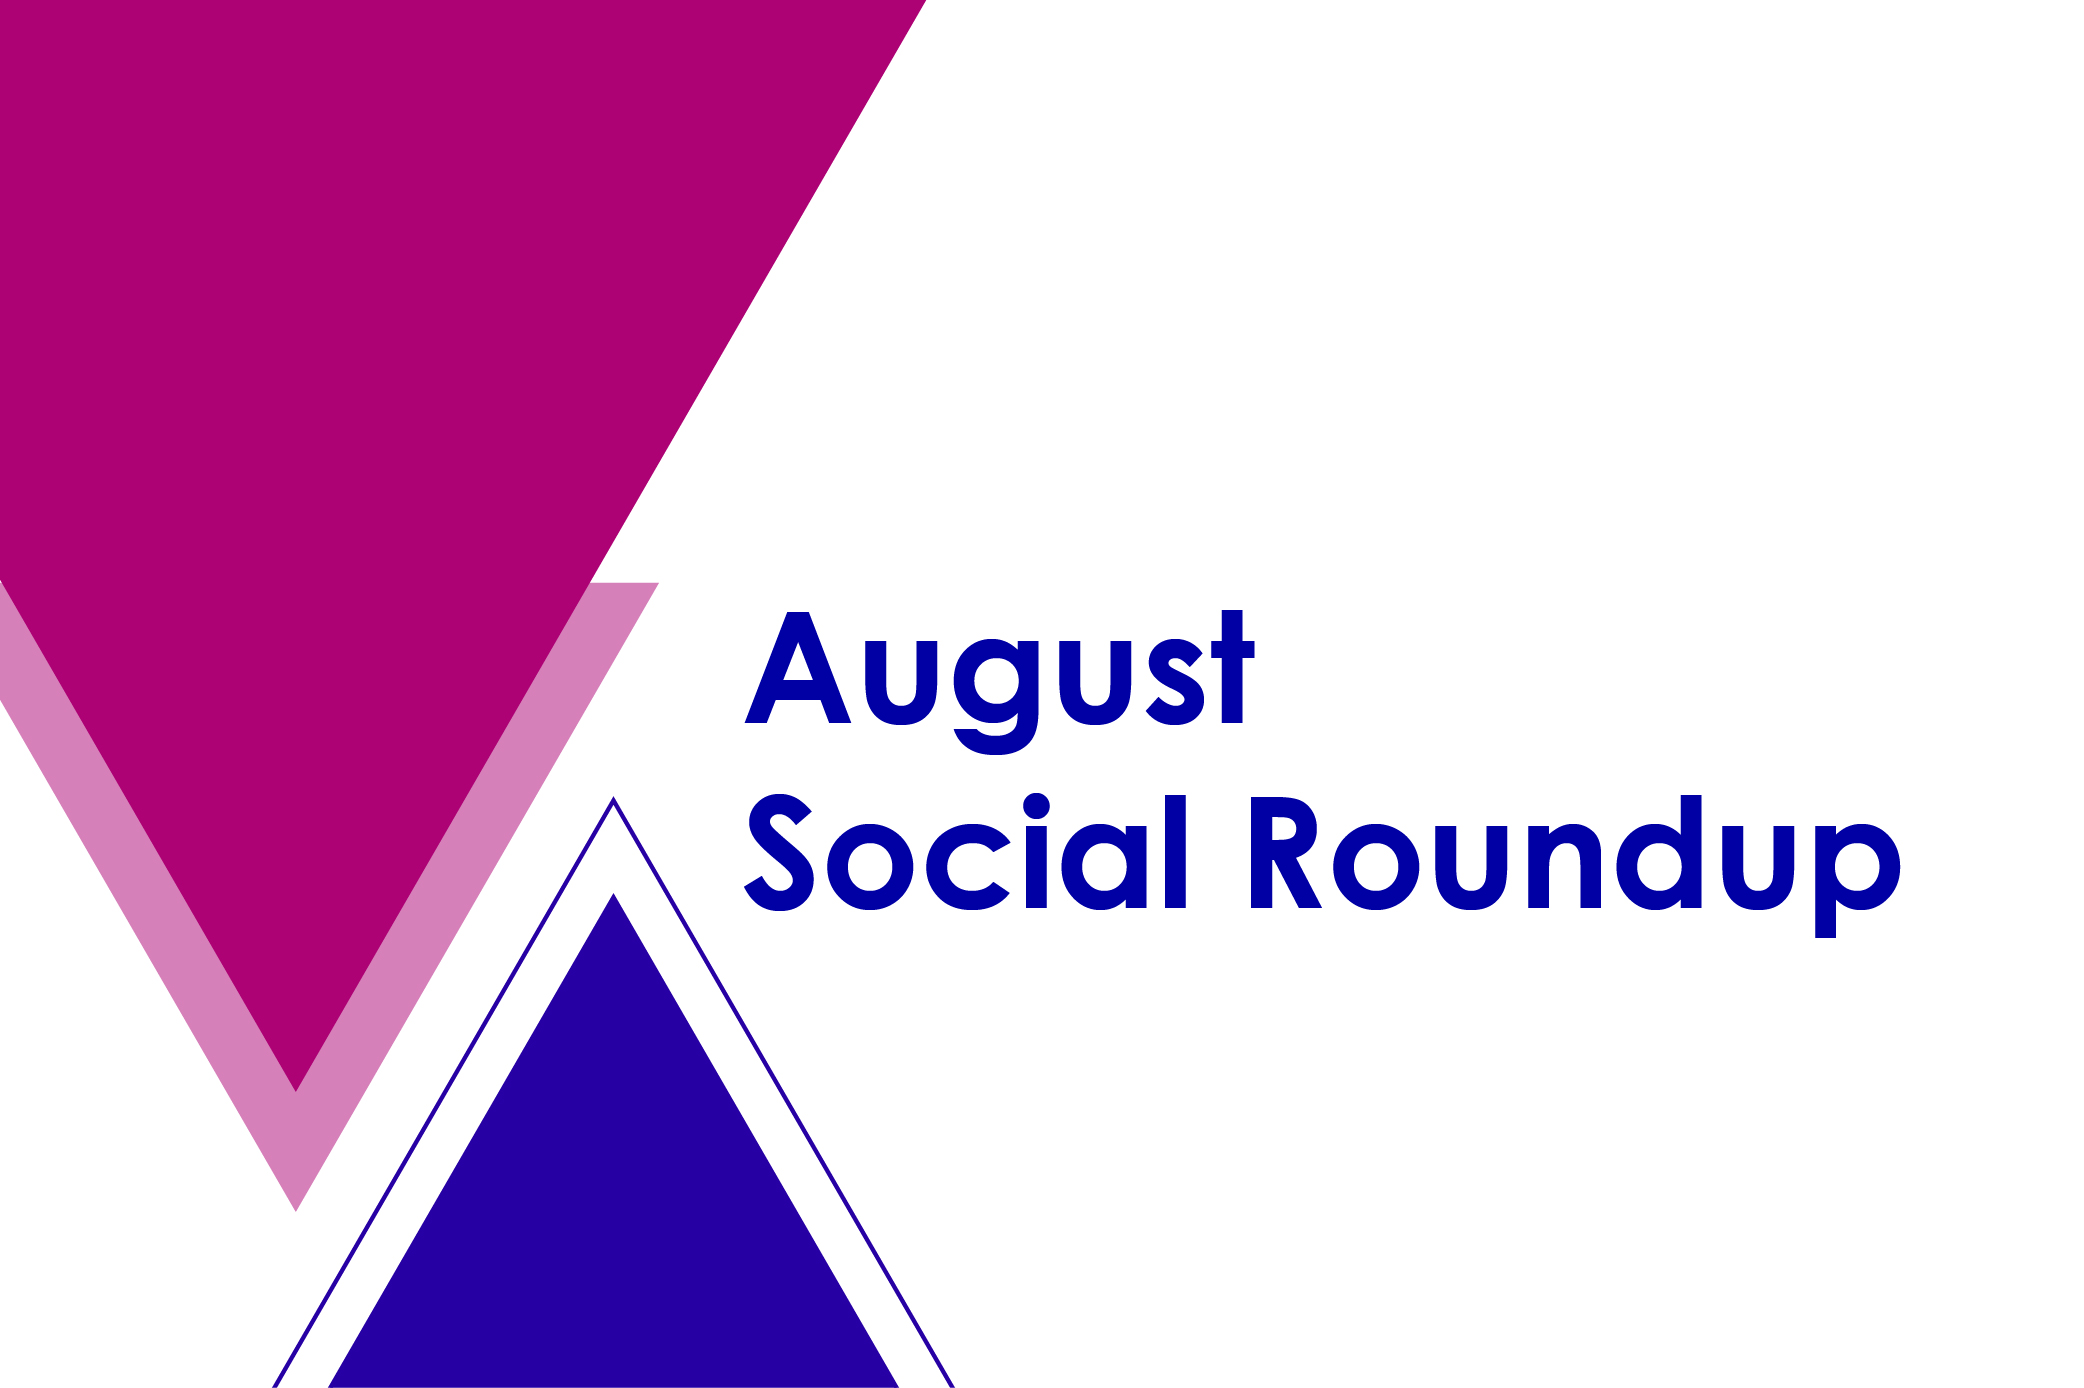 Aug social roundup feature